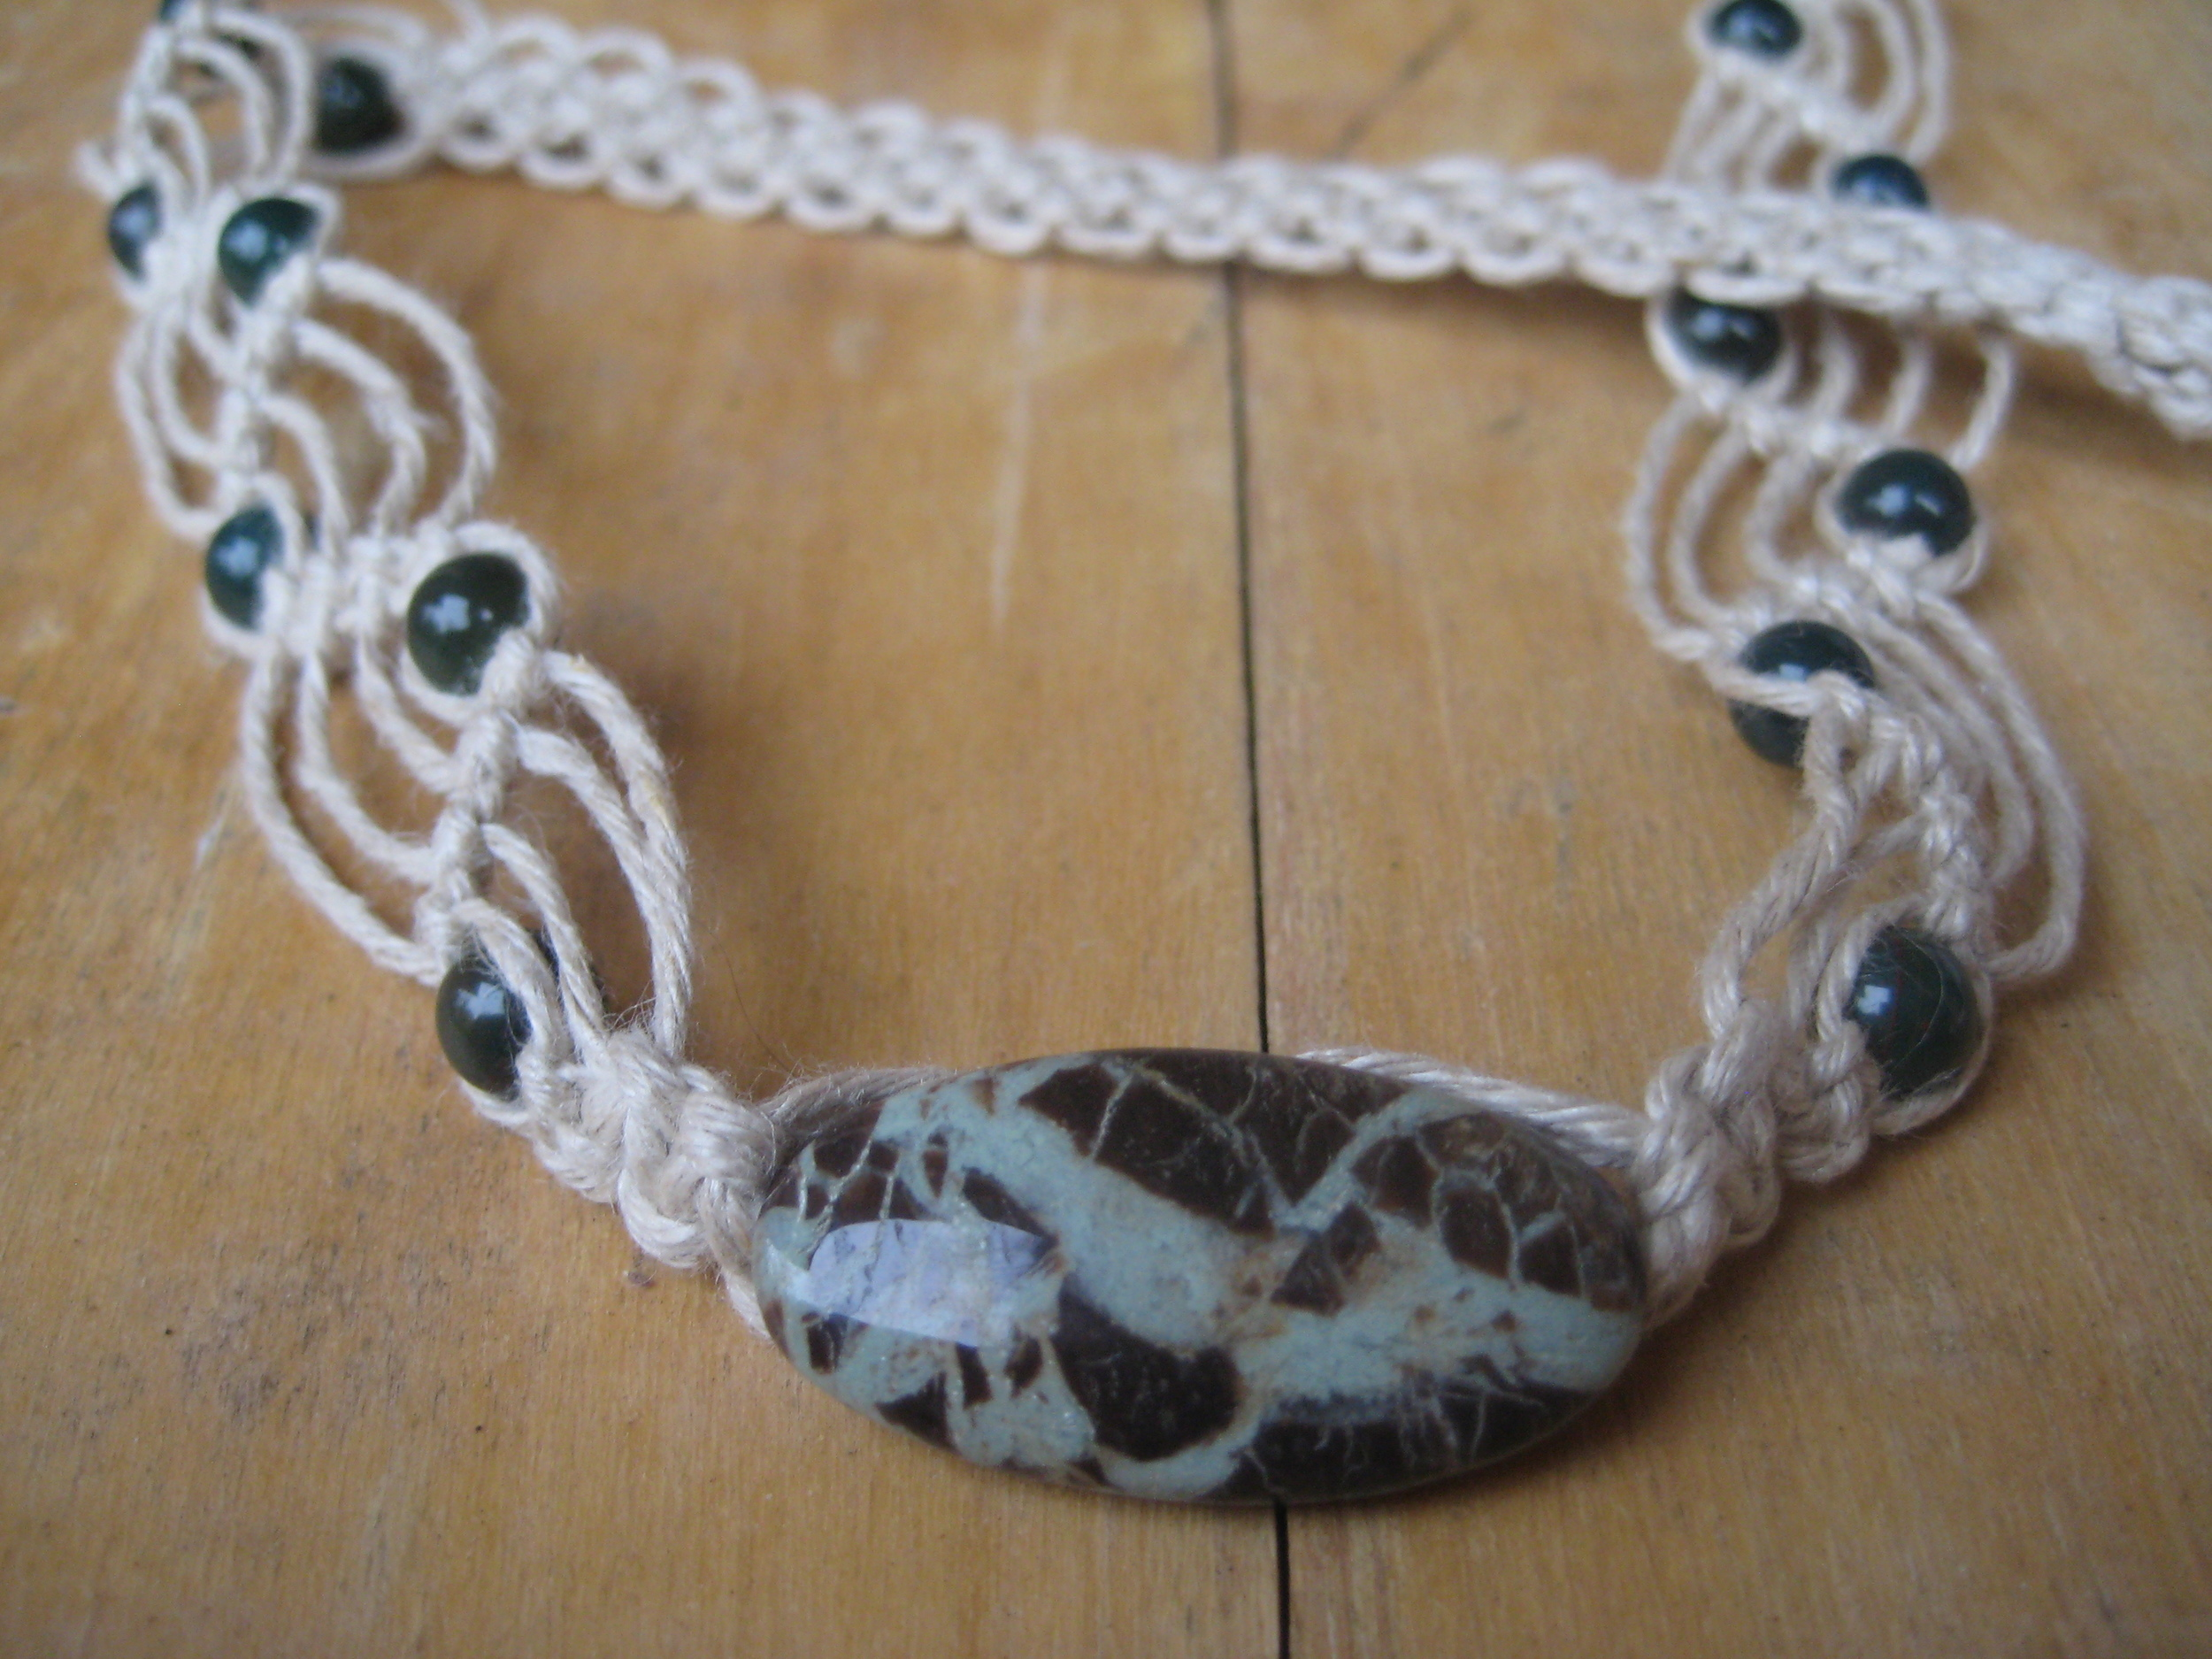 Gorgeous Lake Agate is the focal of this soft, comfy chemical-free hemp necklace. Bloodstone rounds dot the waves. This is a one-of-a-kind piece (that has a coordinating bracelet!) that will be on sale with more macramé soon at www.peridotdaisy.com!